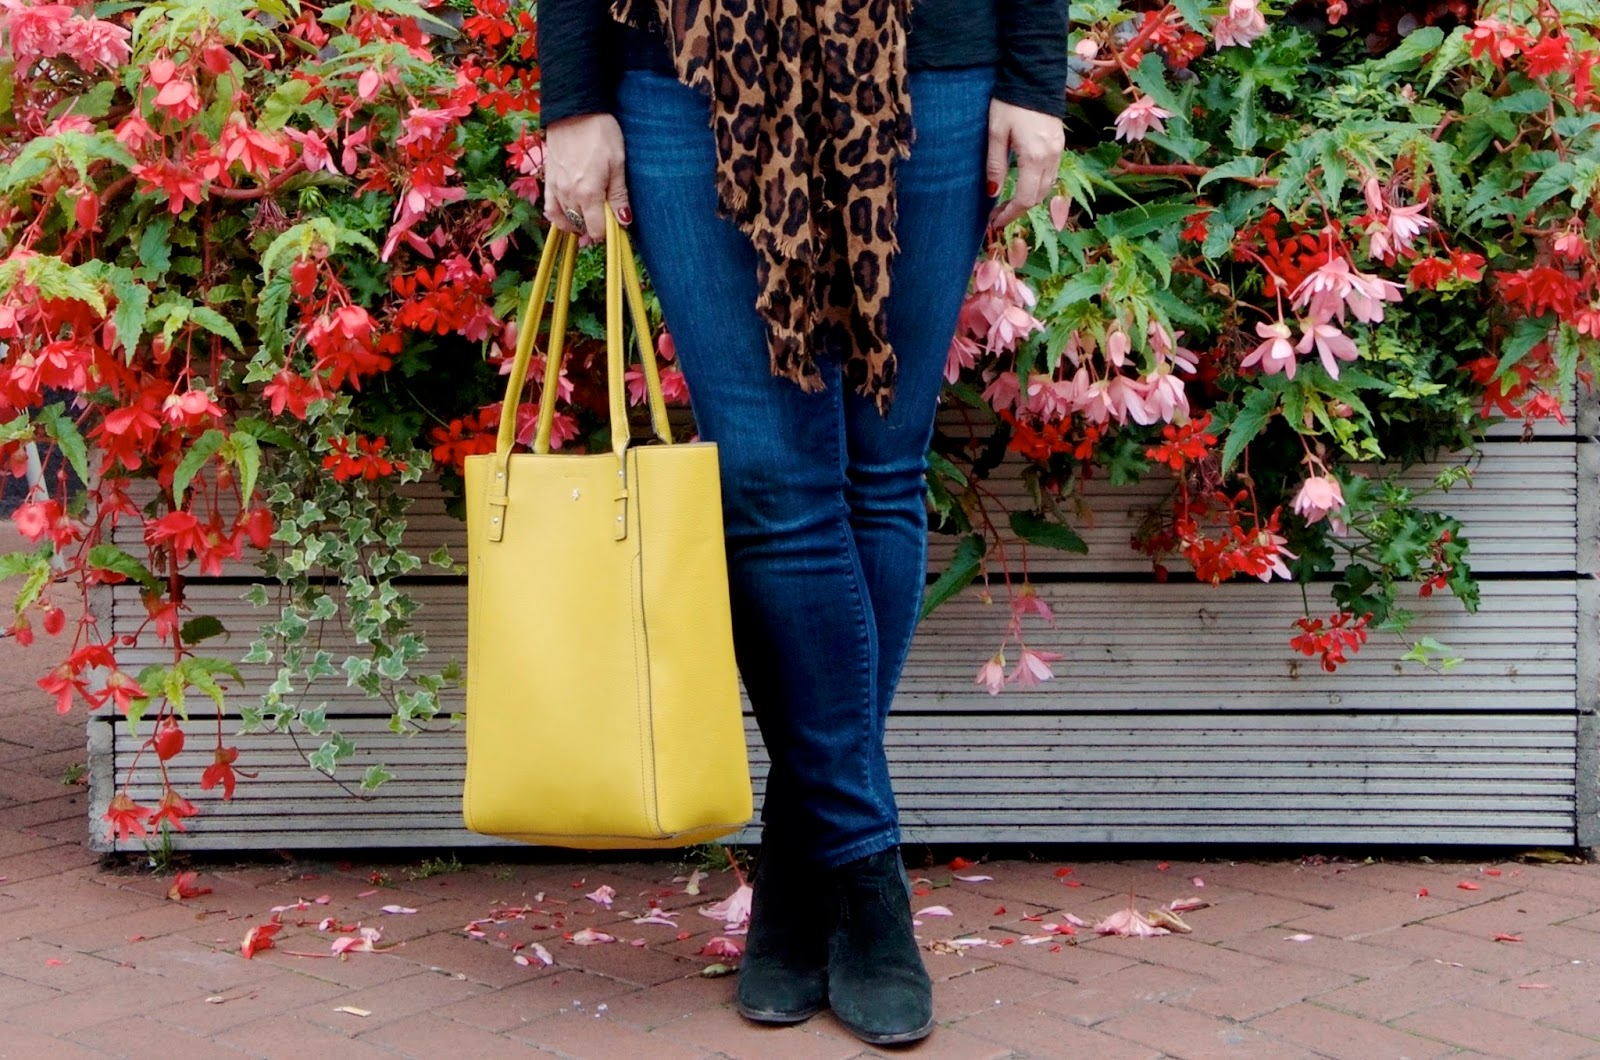 Yellow Tote Bag, Leopard Scarf, Skinny Jeans, Black suede boots and flowers